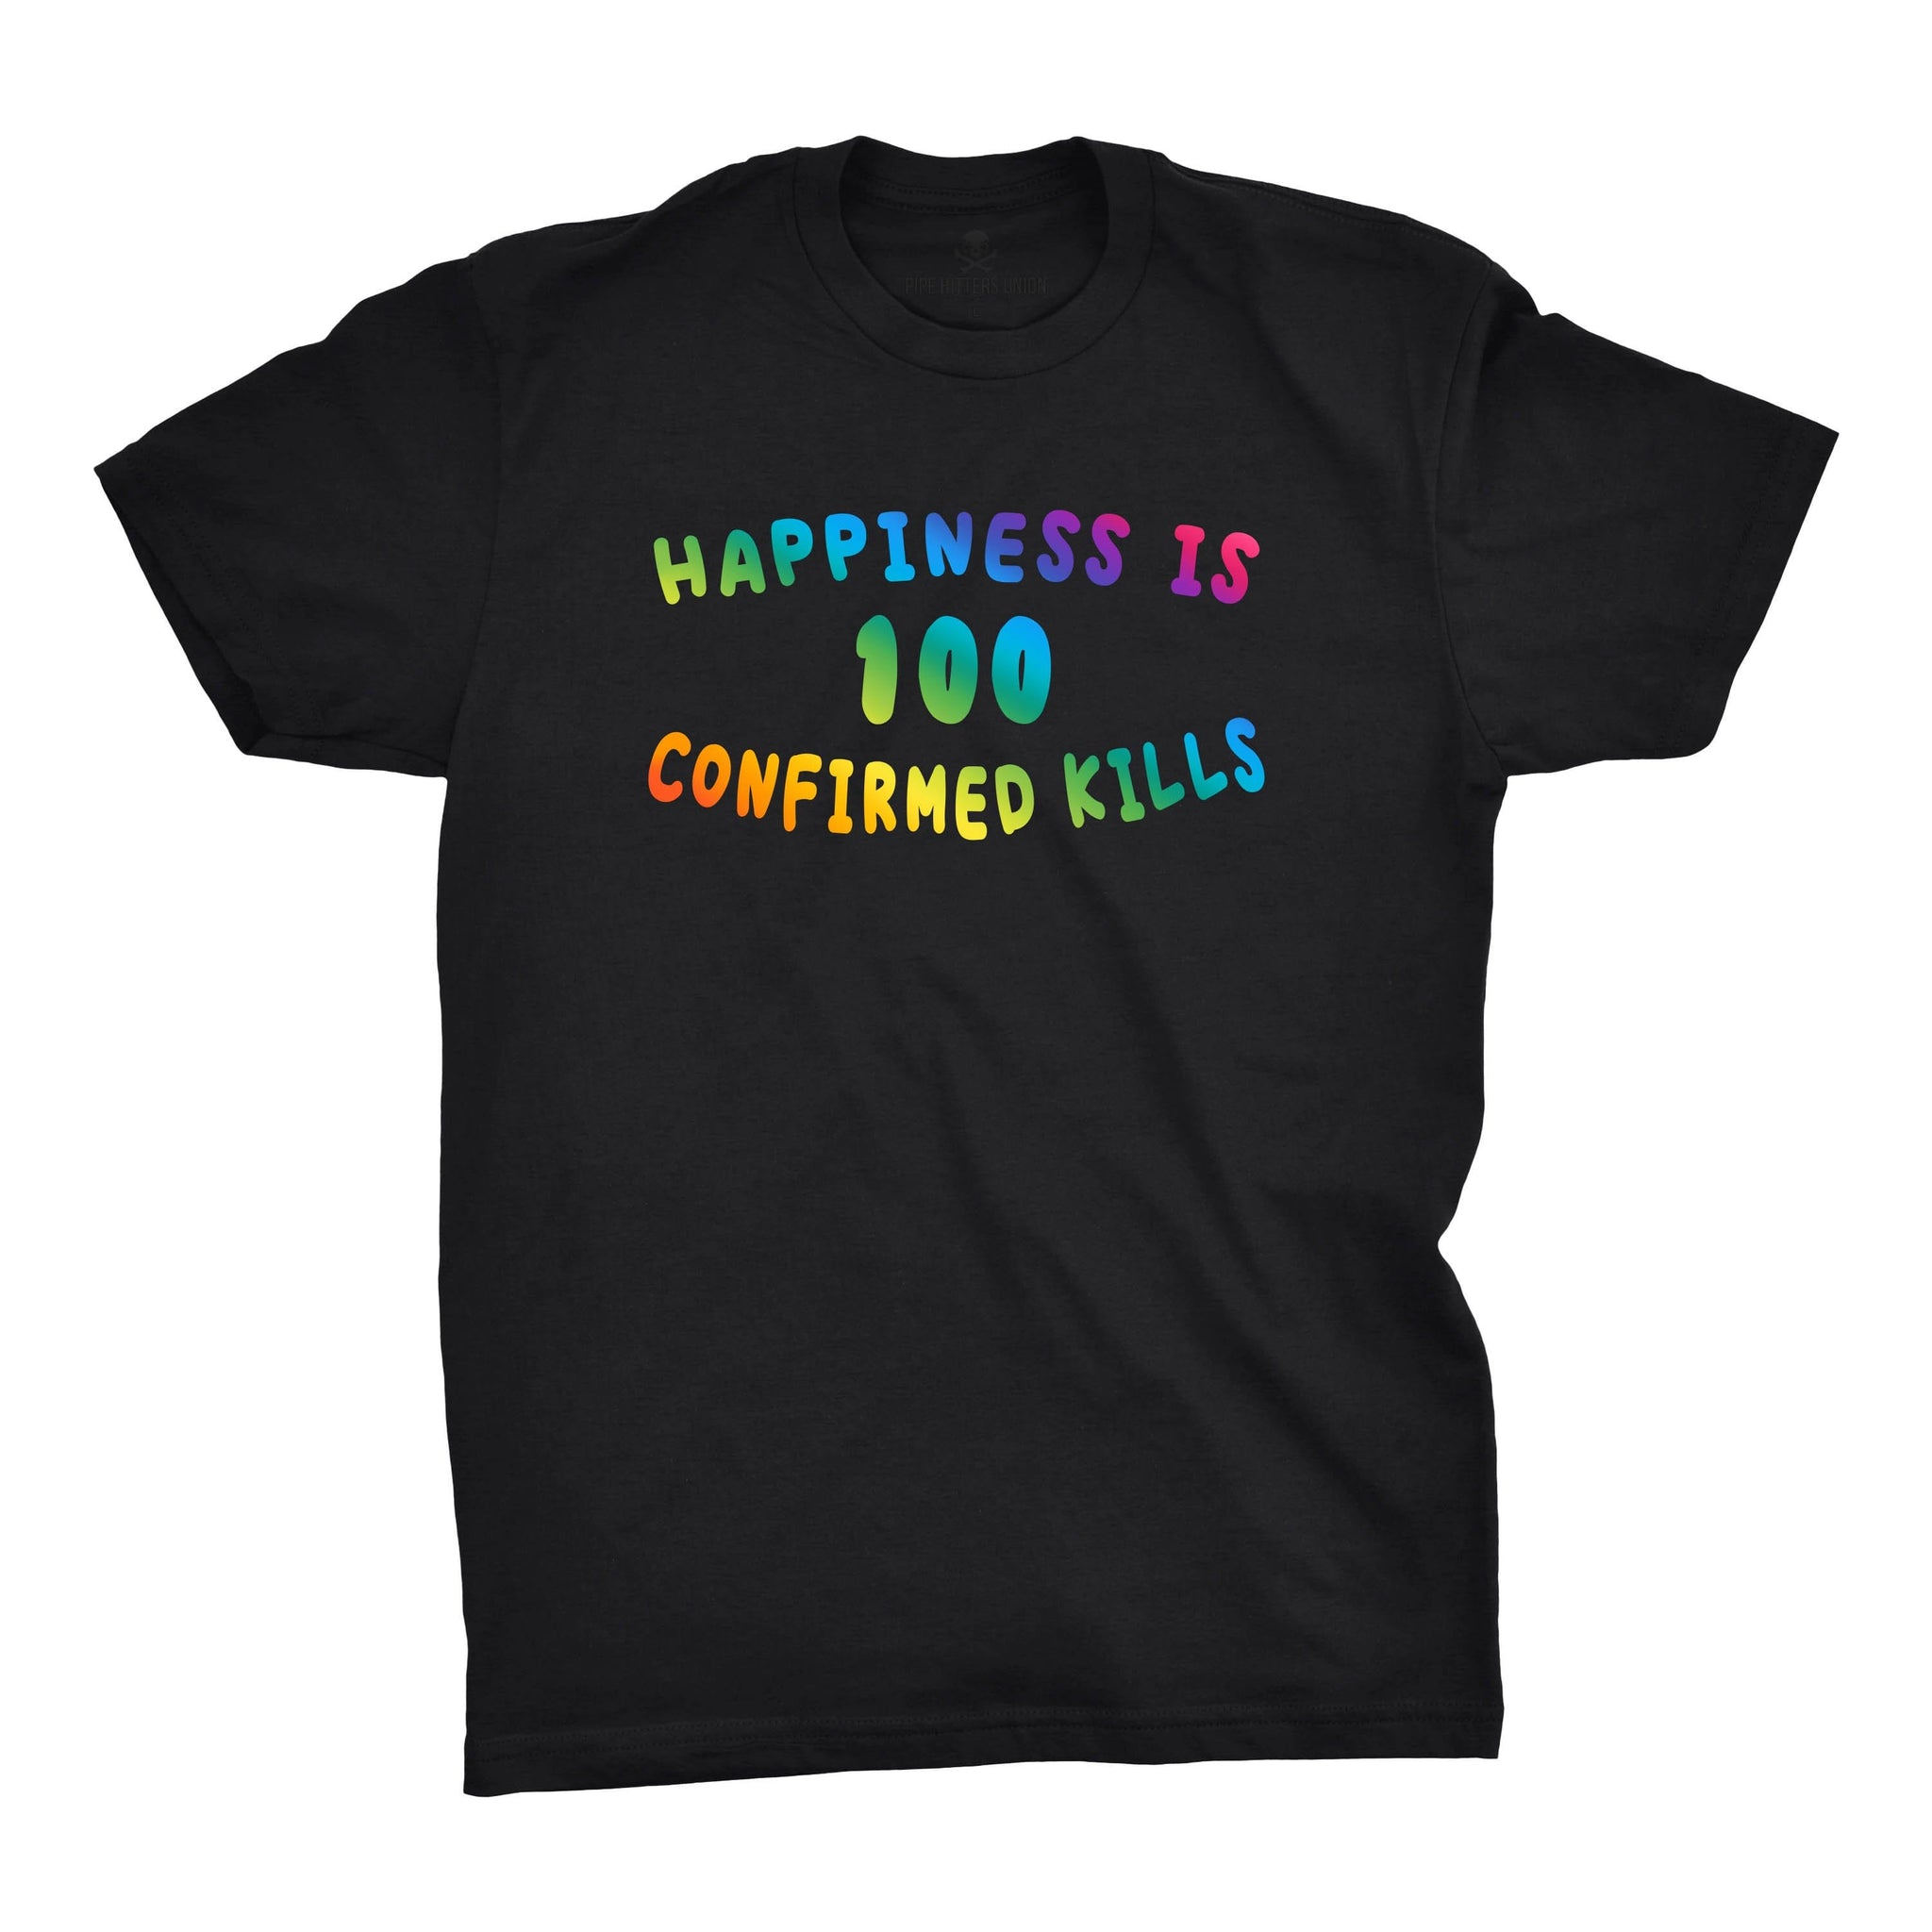 Happiness is 100 Confirmed Kills - Black/Multi - T-Shirts - Pipe Hitters Union